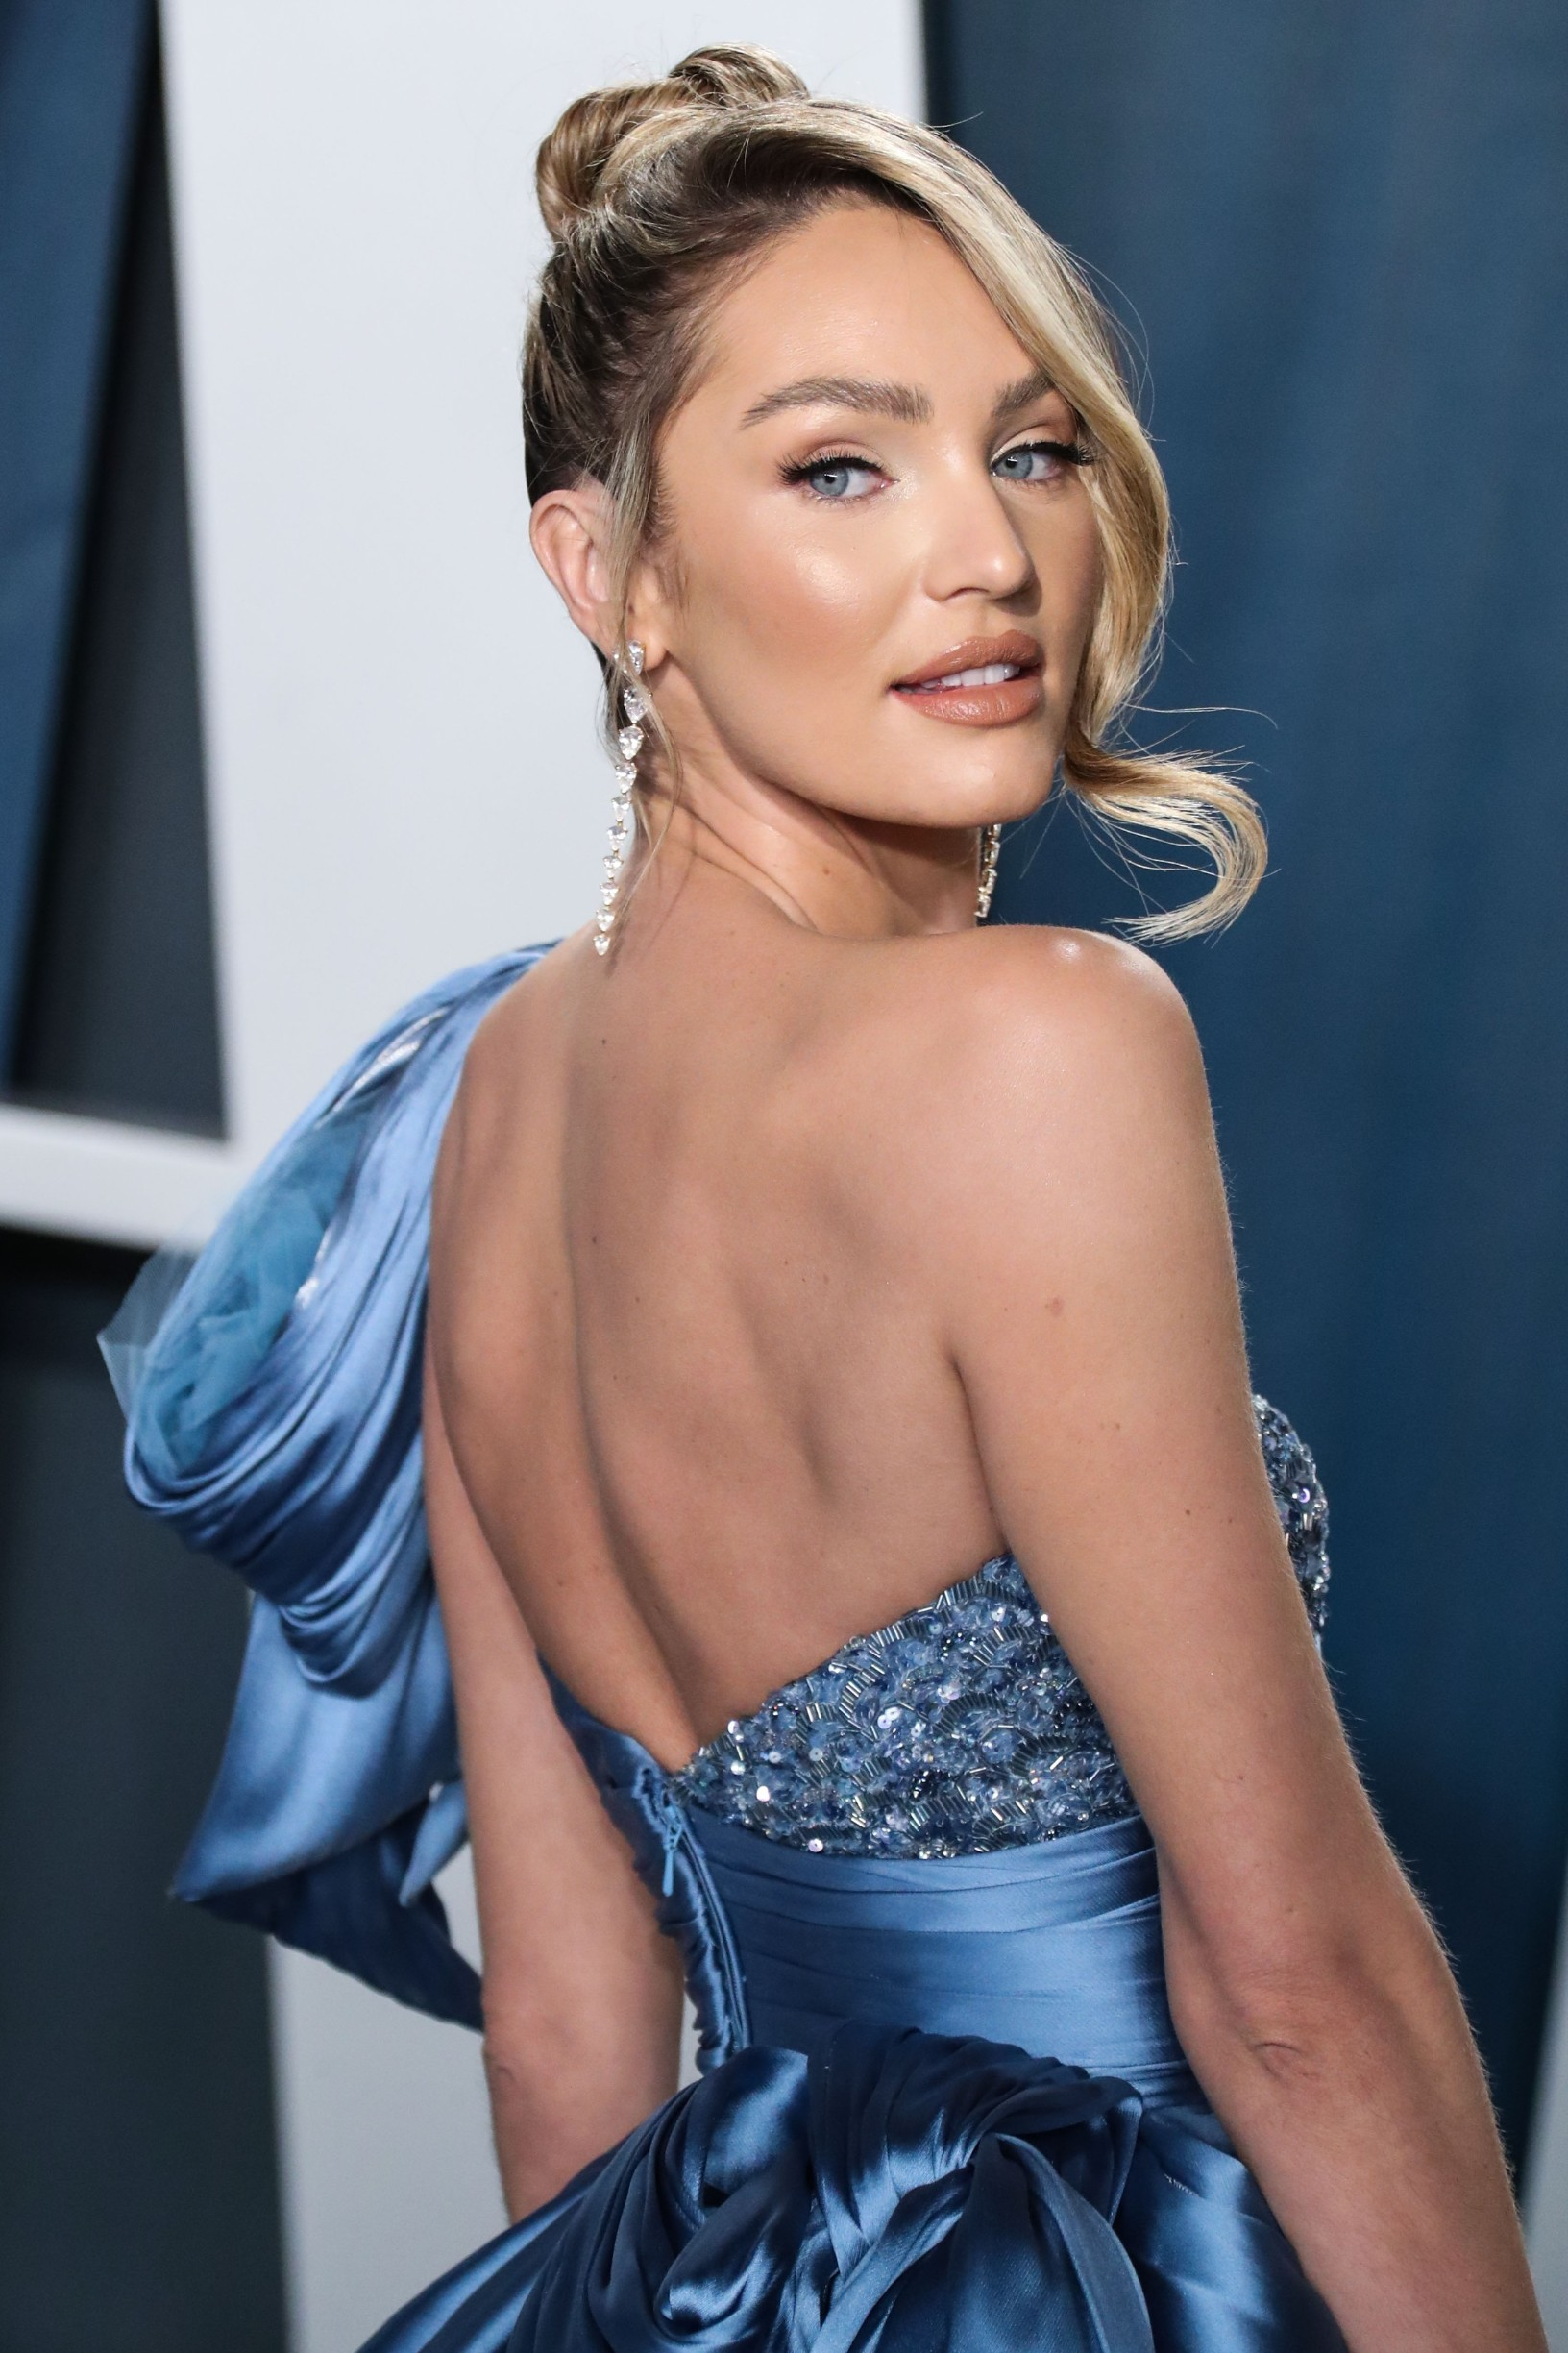 BEVERLY HILLS, LOS ANGELES, CALIFORNIA, USA - FEBRUARY 09: Candice Swanepoel arrives at the 2020 Vanity Fair Oscar Party held at the Wallis Annenberg Center for the Performing Arts on February 9, 2020 in Beverly Hills, Los Angeles, California, United States.,Image: 497738885, License: Rights-managed, Restrictions: WORLD RIGHTS - Fee Payable Upon Reproduction - For queries contact Avalon.red - sales@avalon.red London: +44 (0) 20 7421 6000 Los Angeles: +1 (310) 822 0419 Berlin: +49 (0) 30 76 212 251, Model Release: no, Credit line: Avalon.red / Avalon Editorial / Profimedia